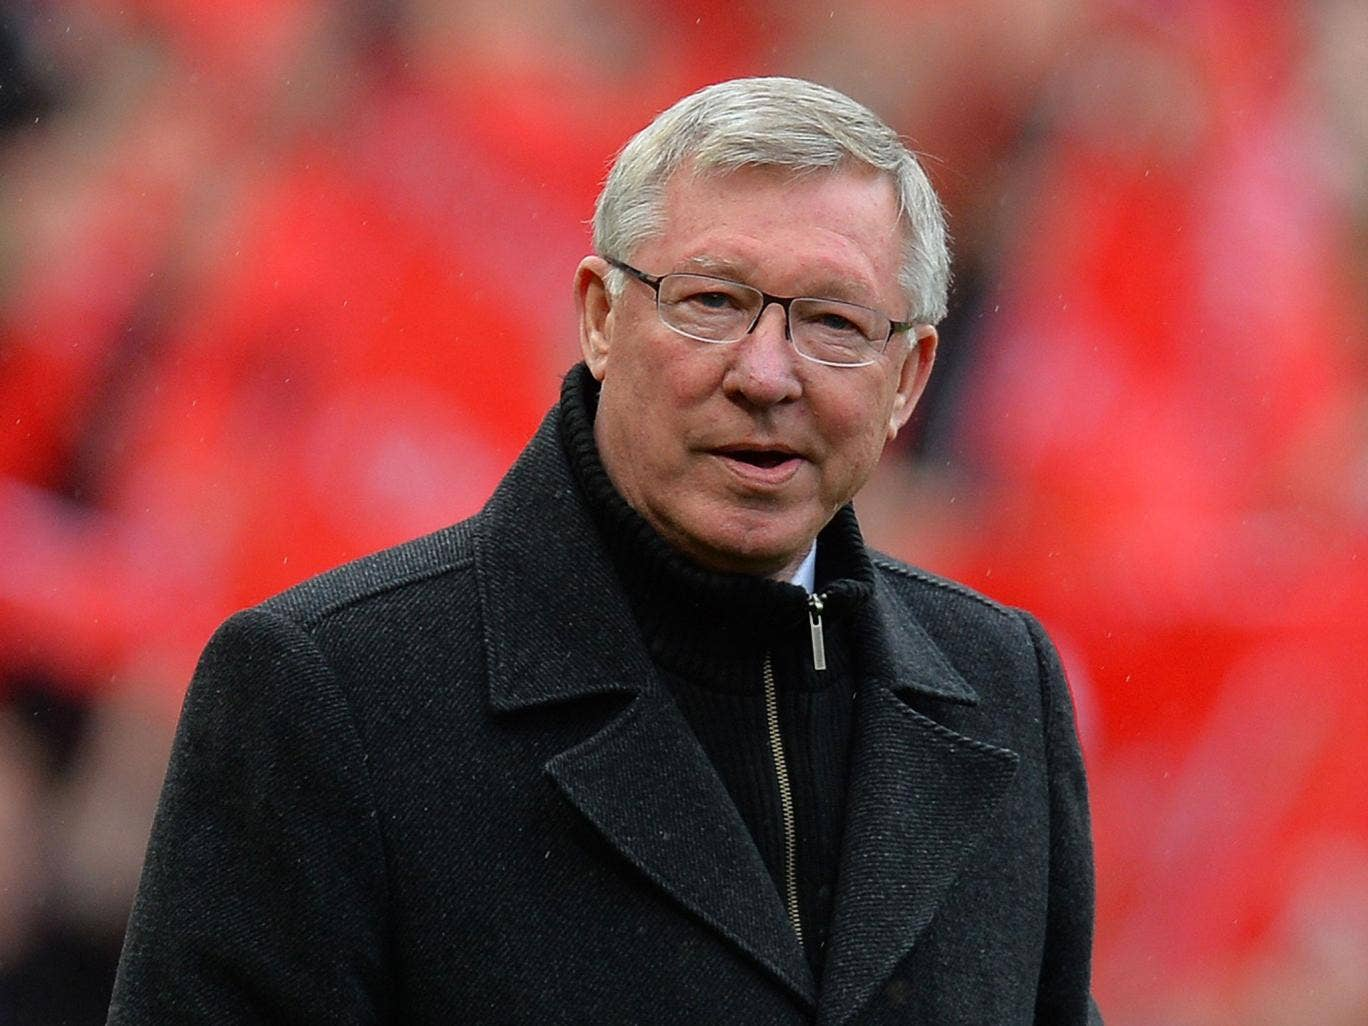 Alex Ferguson has a massive ego and still seeks to exert control and power over the club, says Roy Keane